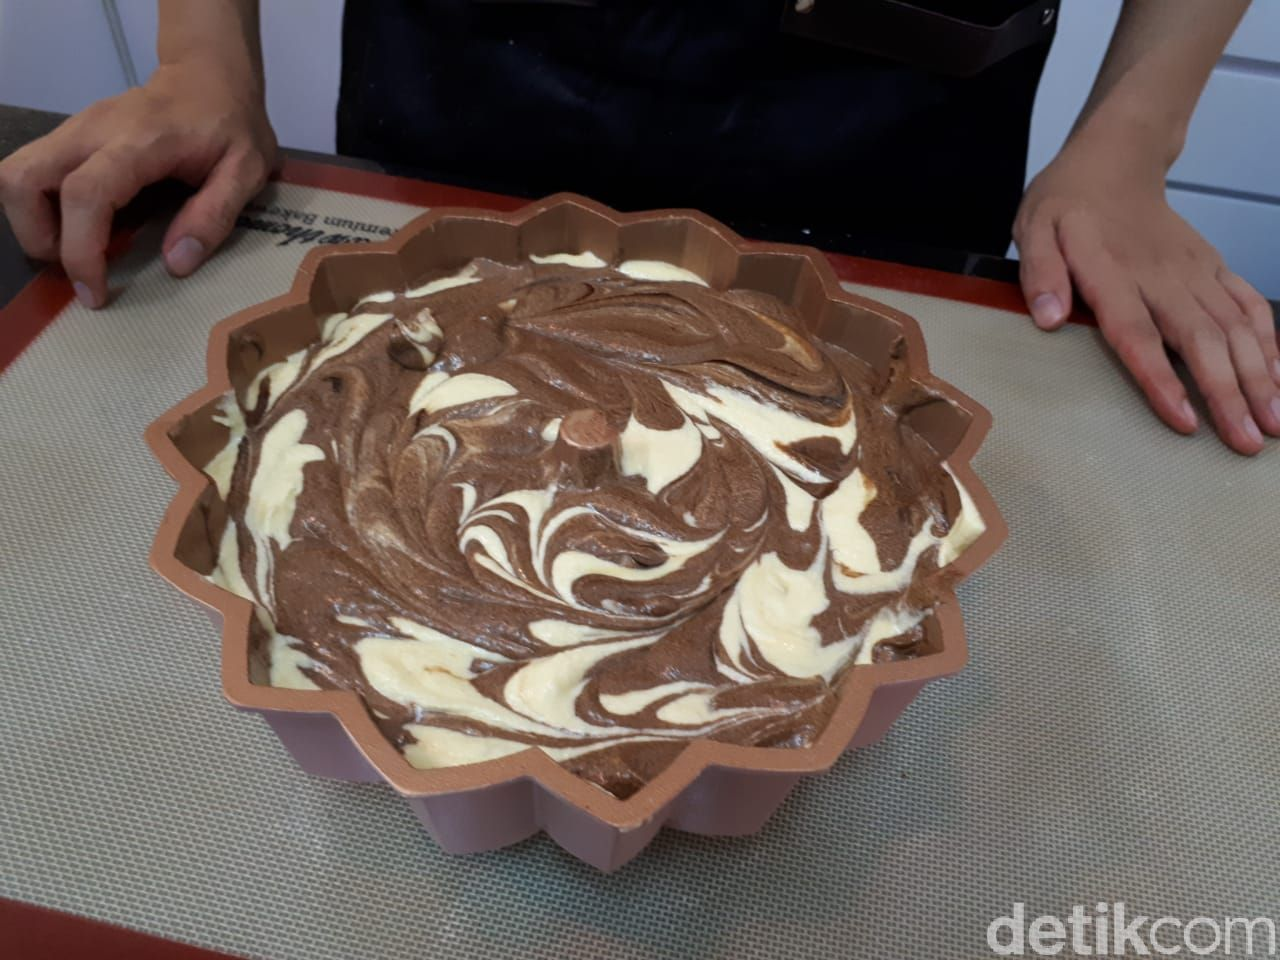 Resep Marmer Caker Super Lembut Ala Thomaz Law